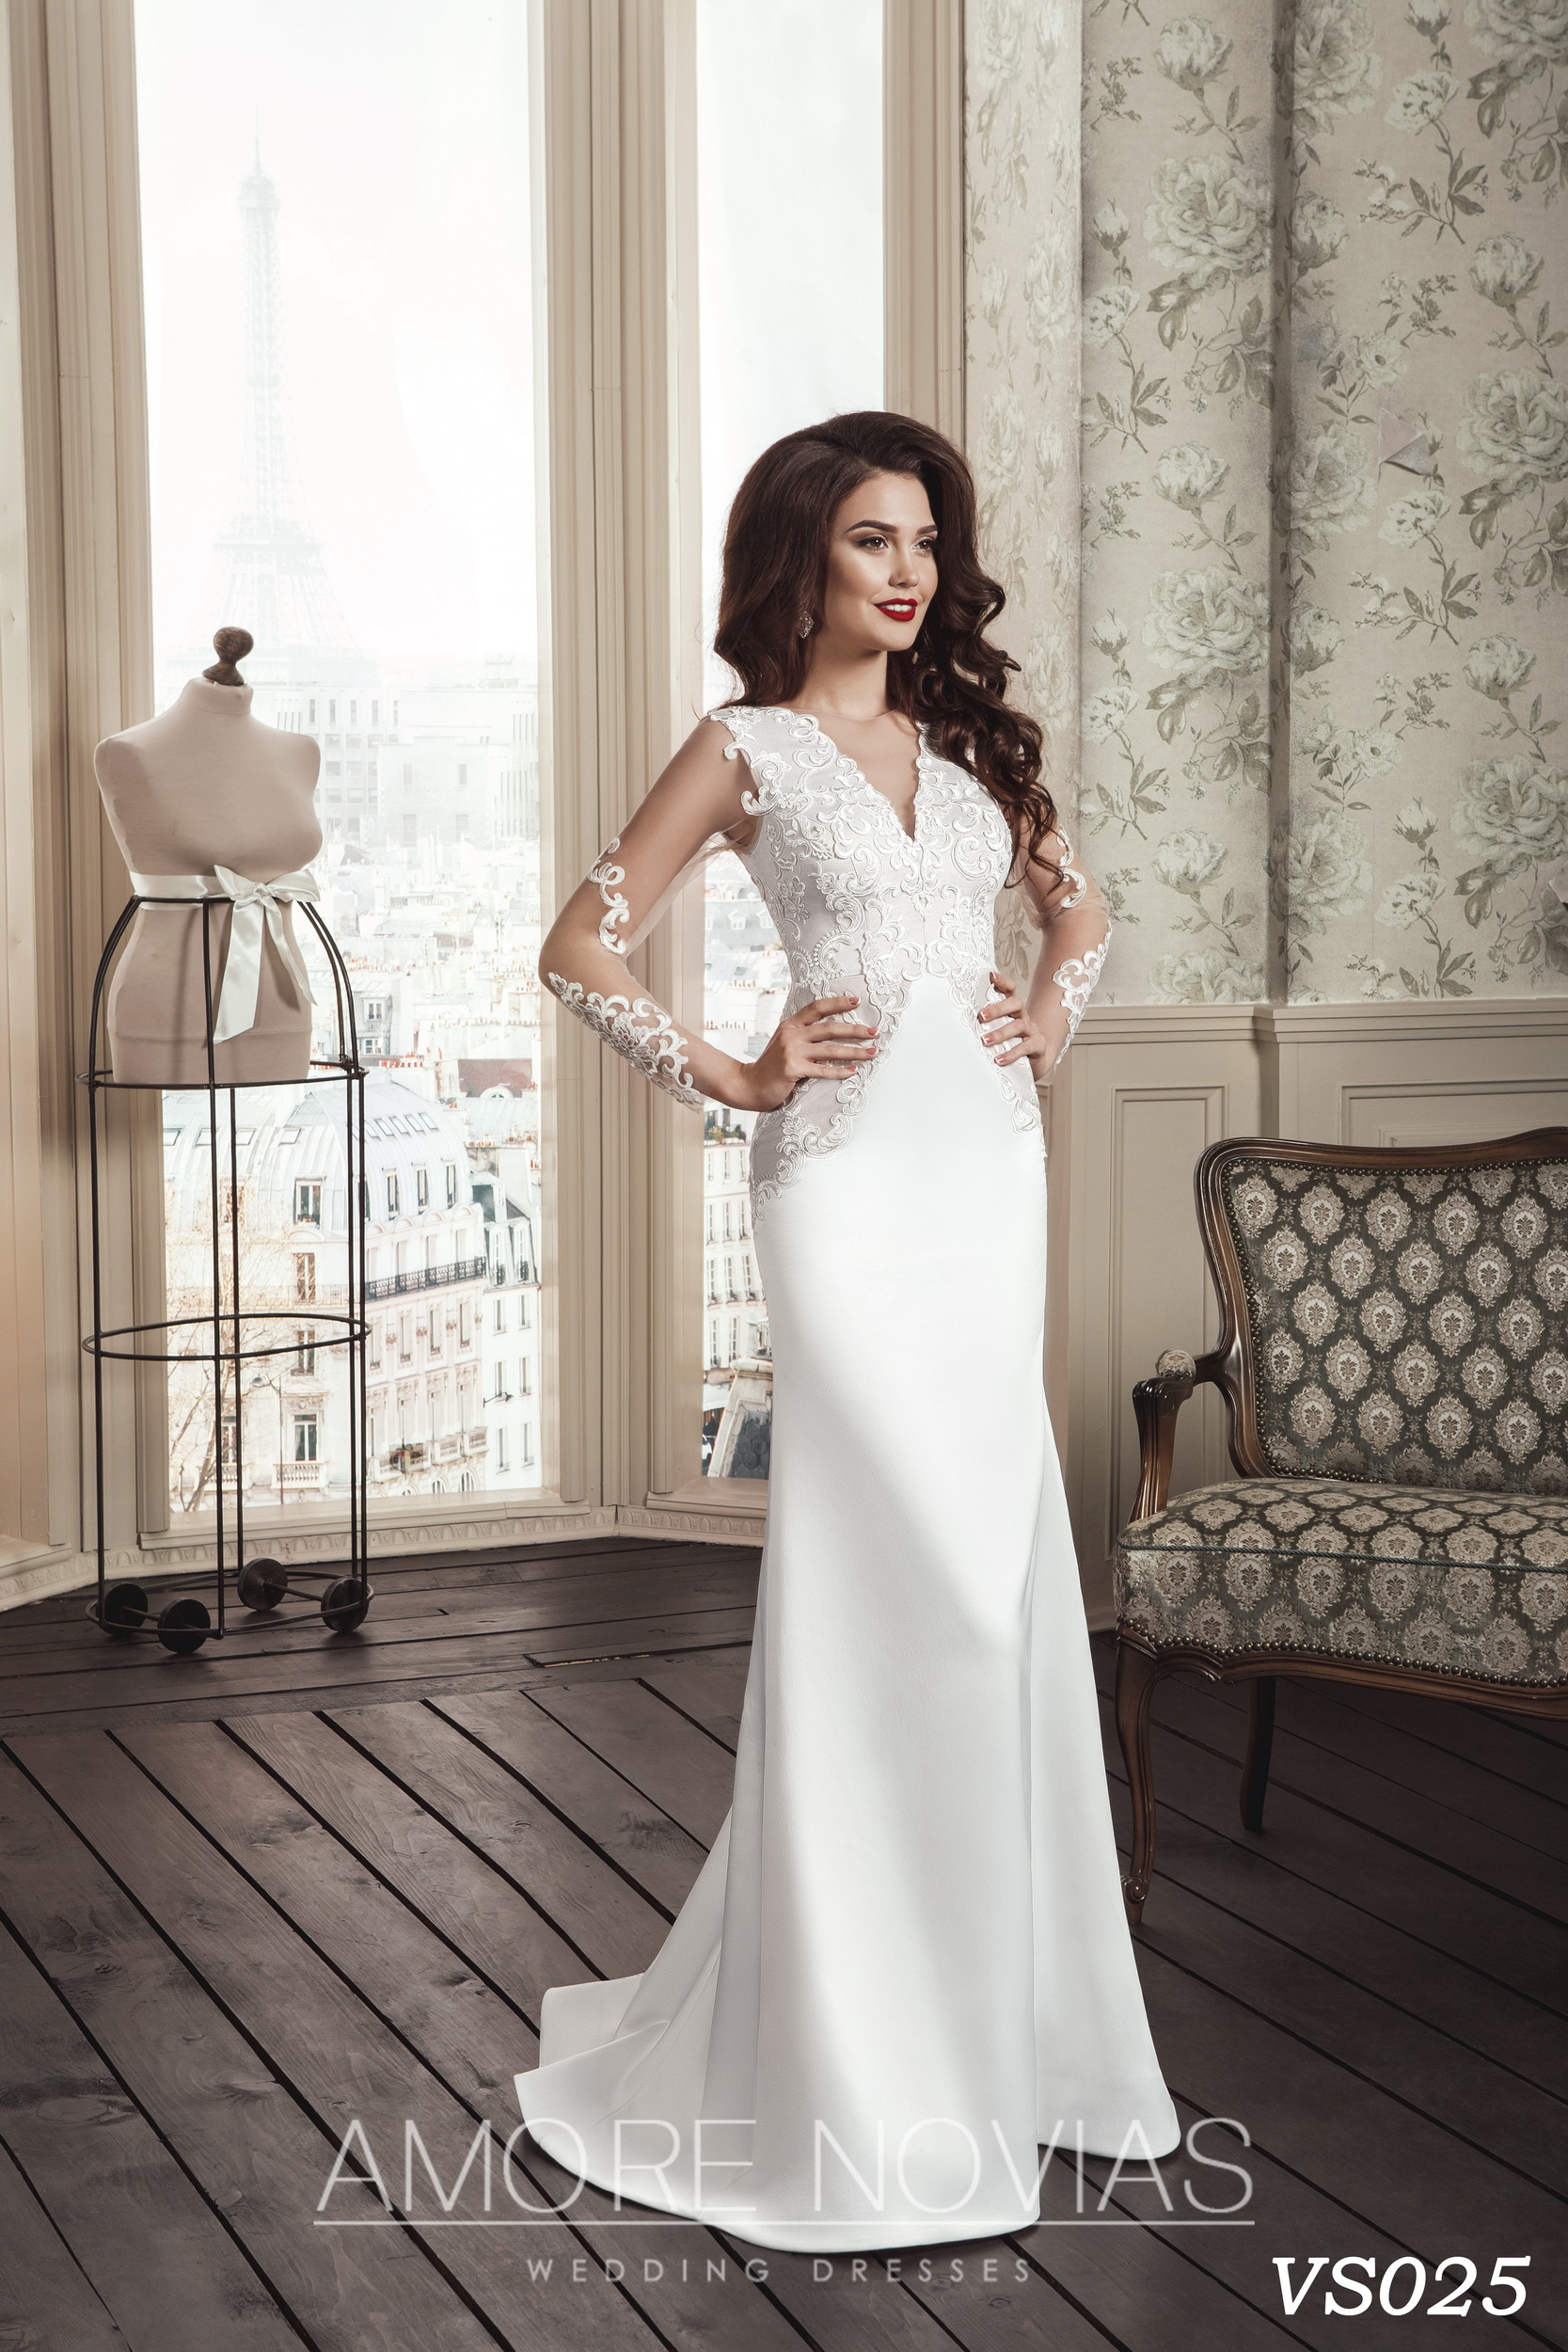 https://amore-novias.com/images/stories/virtuemart/product/vs025.jpg